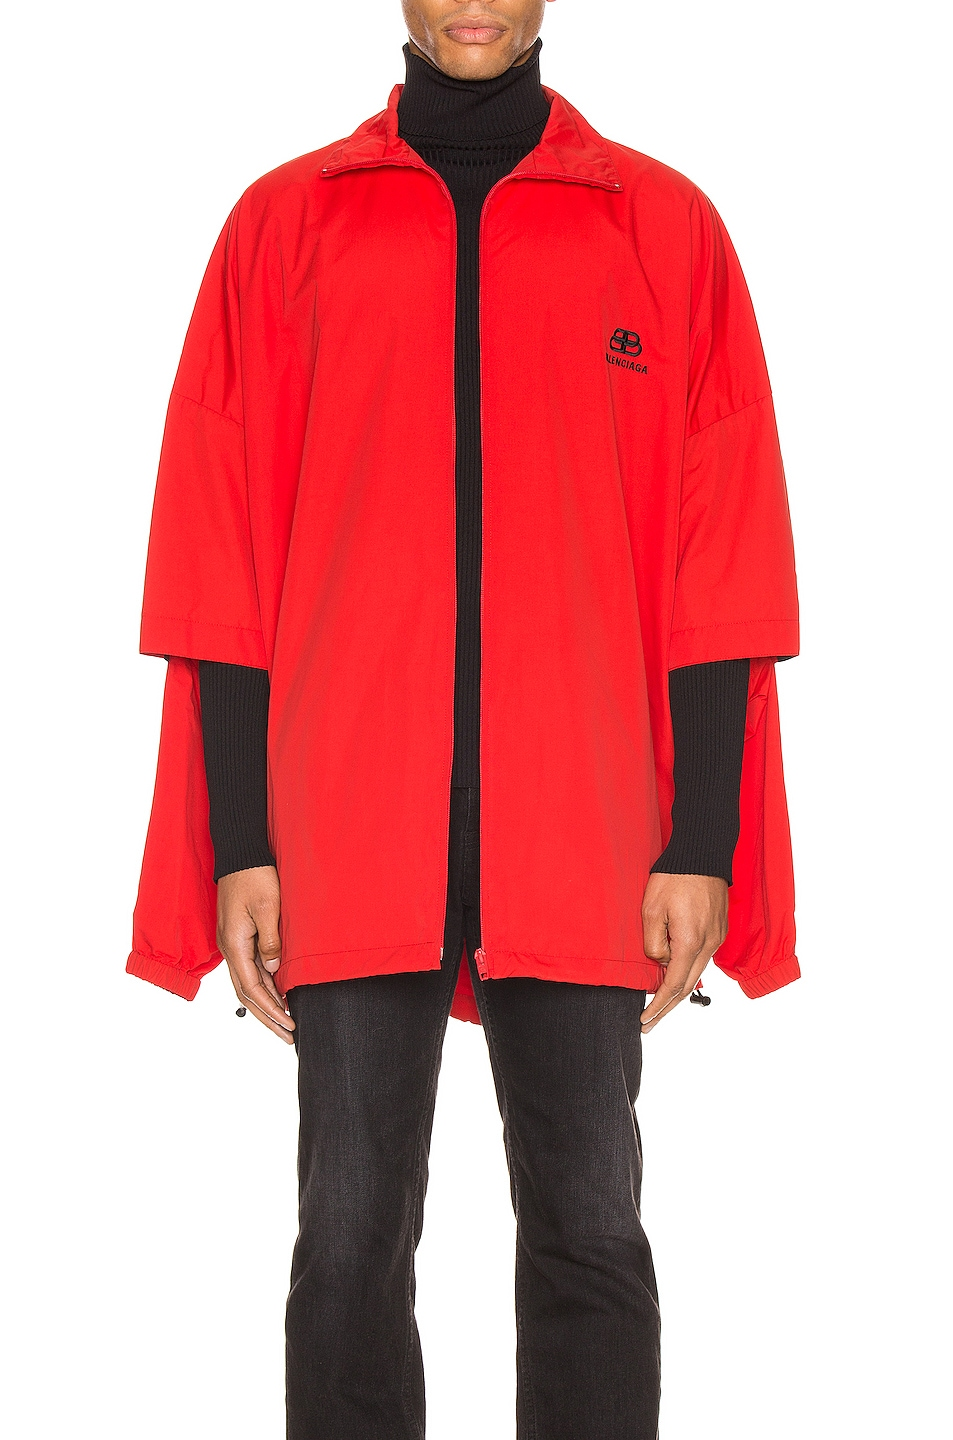 Image 2 of Balenciaga Double Sleeve Zip Up in Masai Red